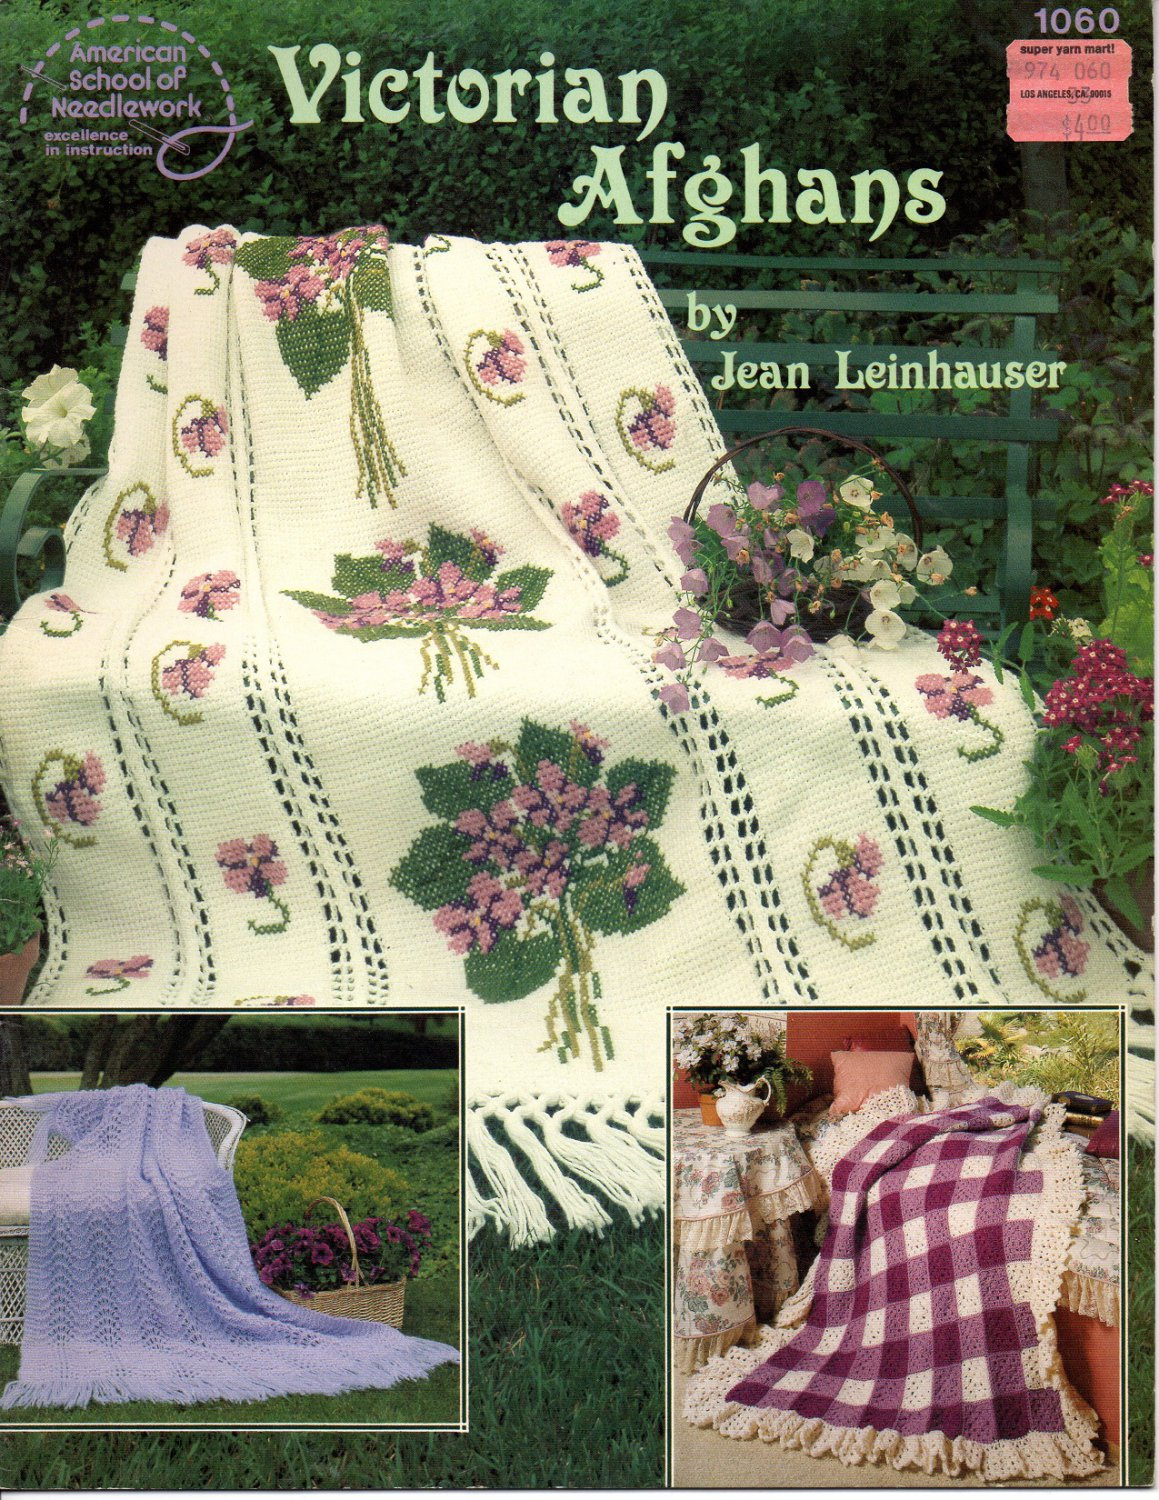 Victorian Afghans American School Of Needlework 1060